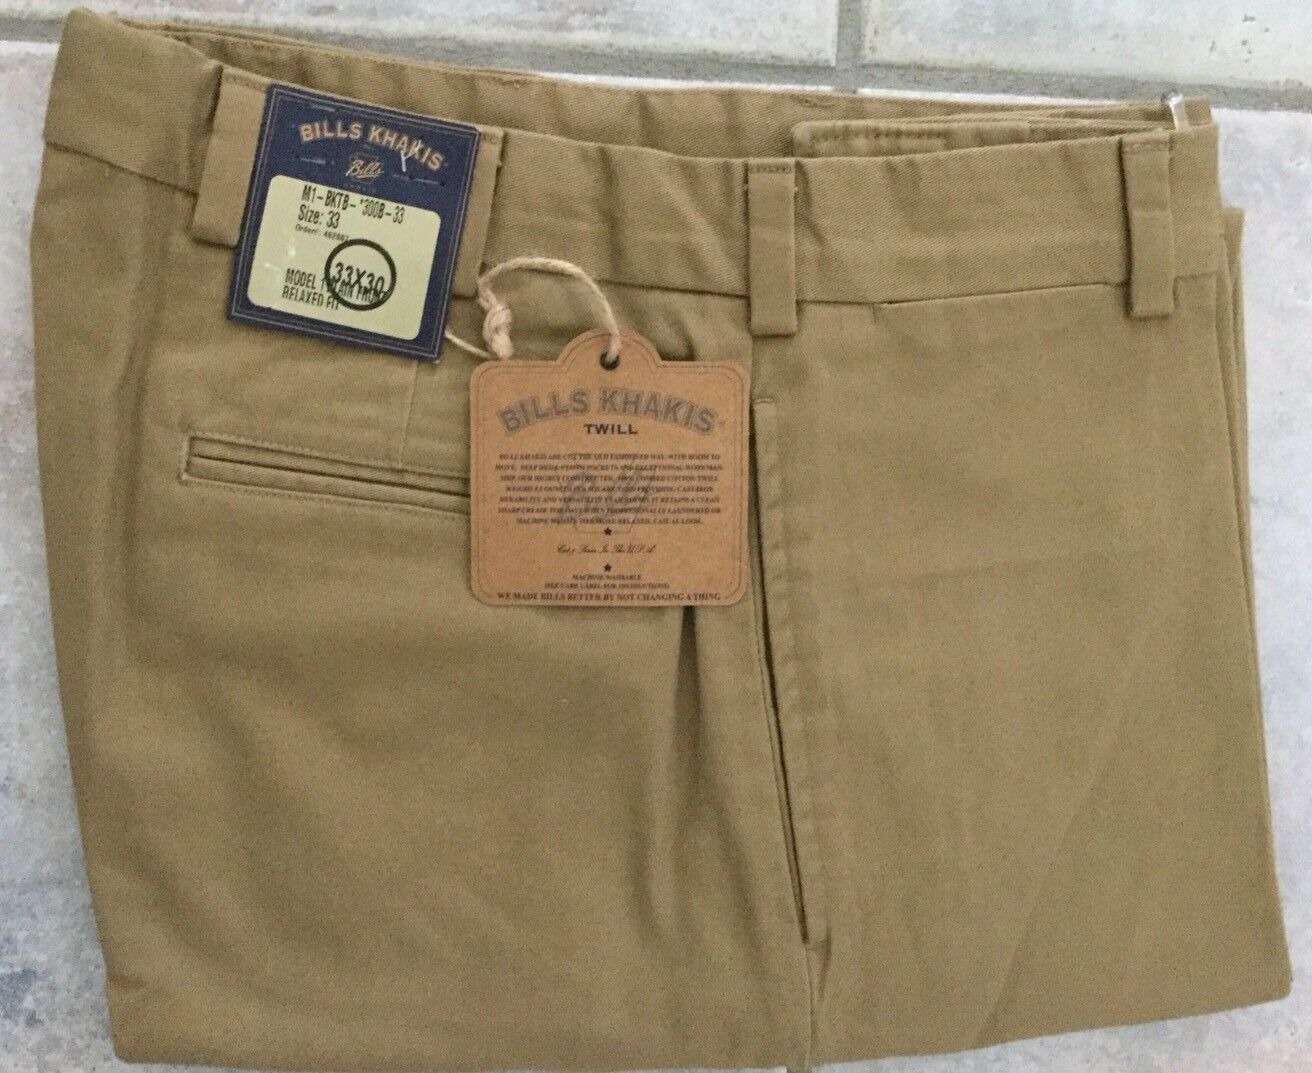 NWT -Bills khakis M1-BKTB Size 33X30 Heavy Cotton CUFFED BRITISH KHAKI